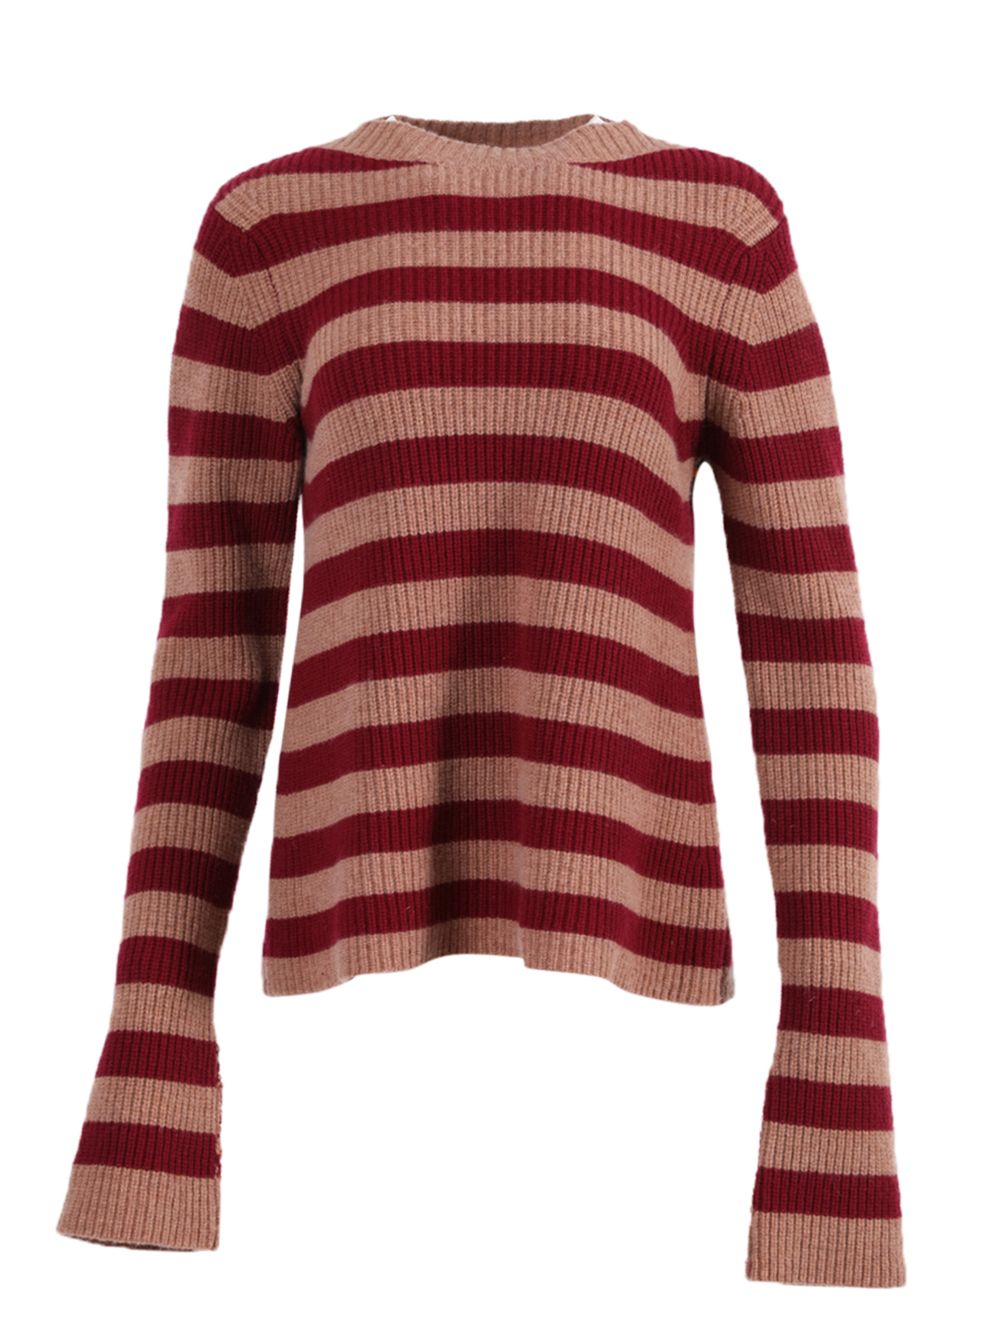 Lhd ANGLET WOOL-CASHMERE SWEATER